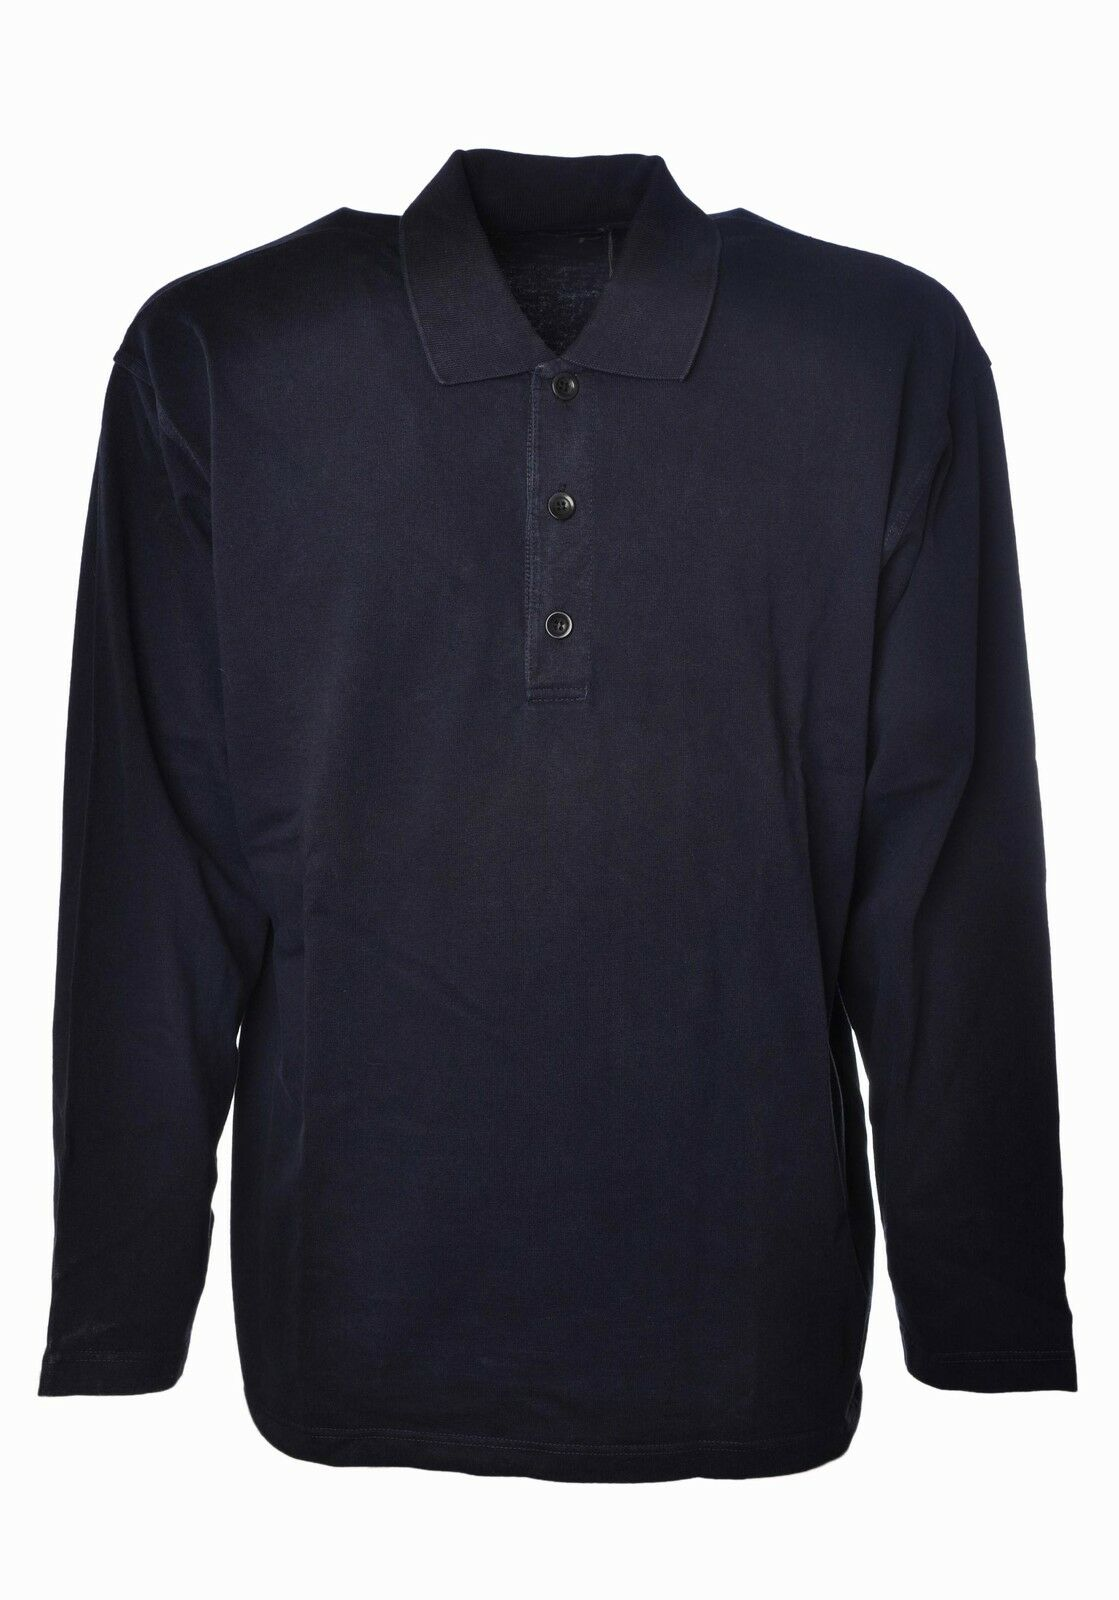 Jey Coleman  -  Polo - Male - bluee - 3733328A183728